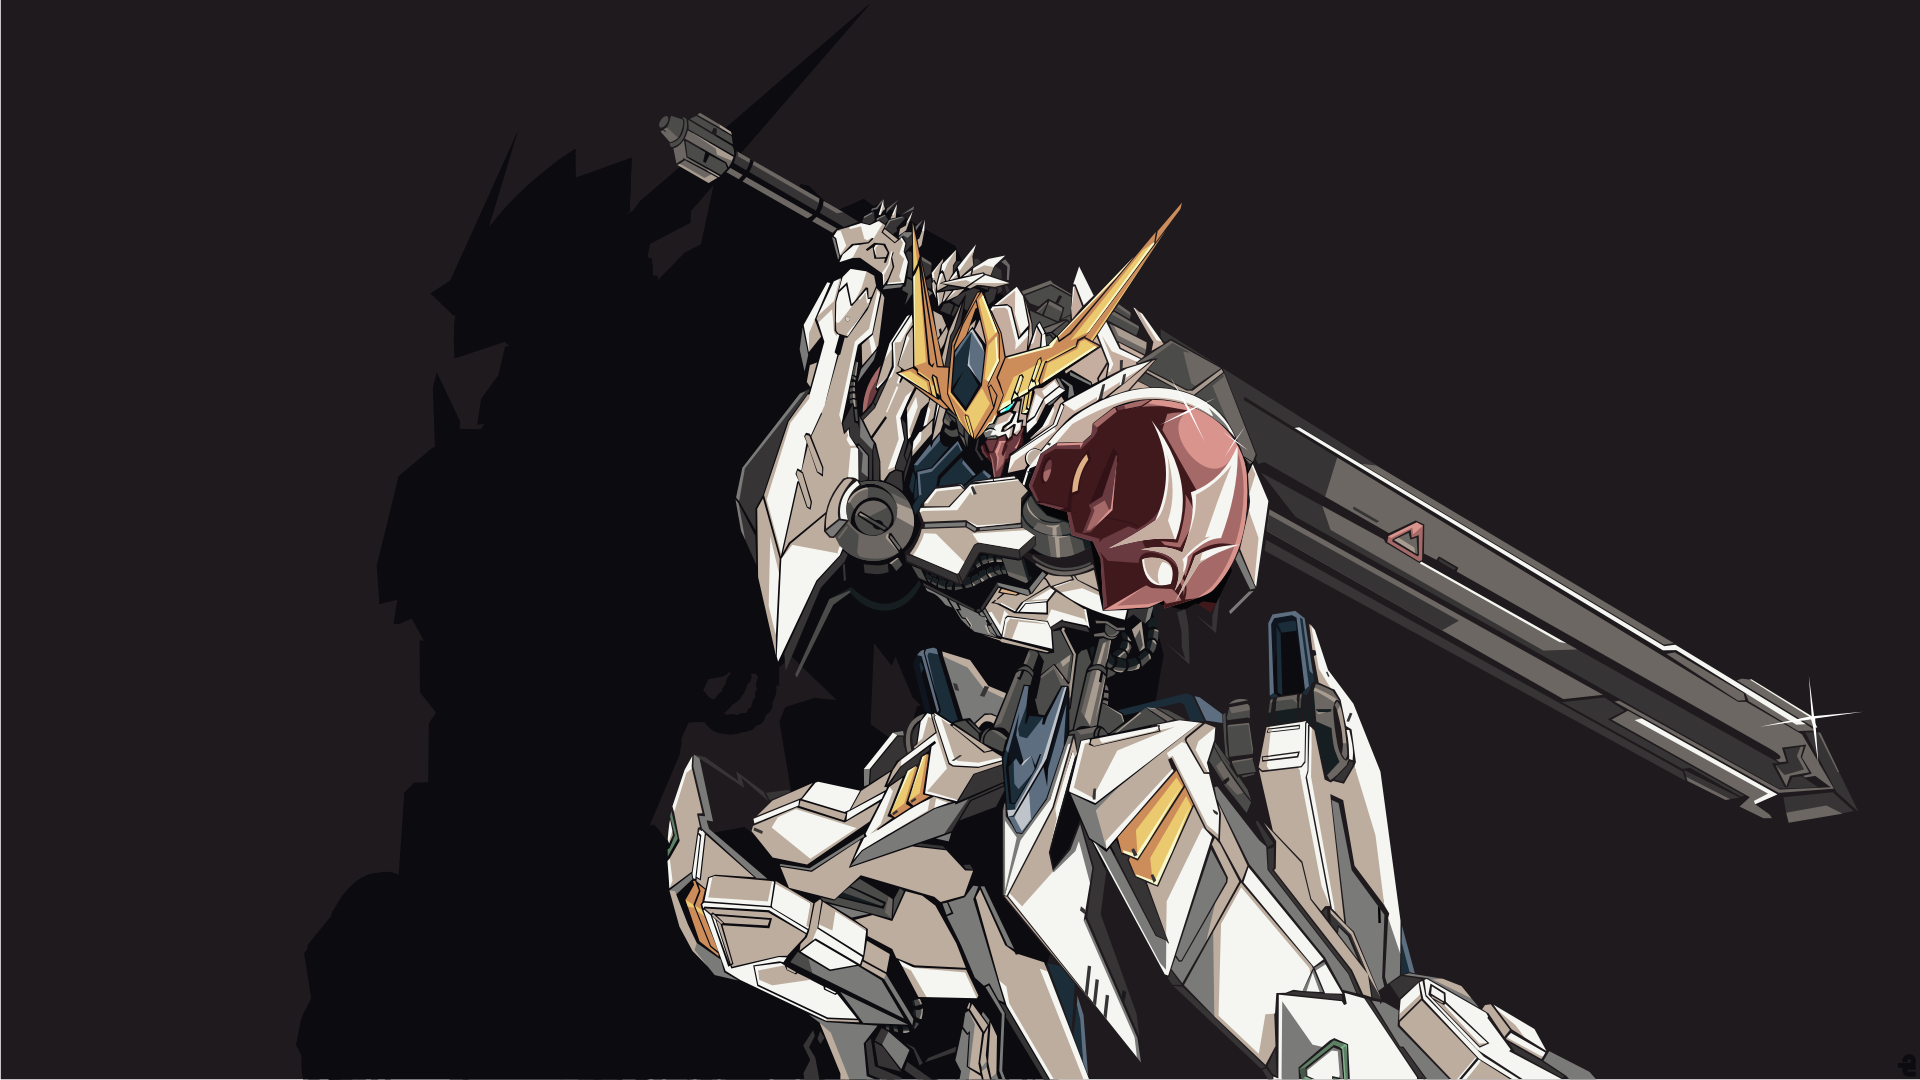 Mobile Suit Gundam Iron Blooded Orphans Hd Wallpaper